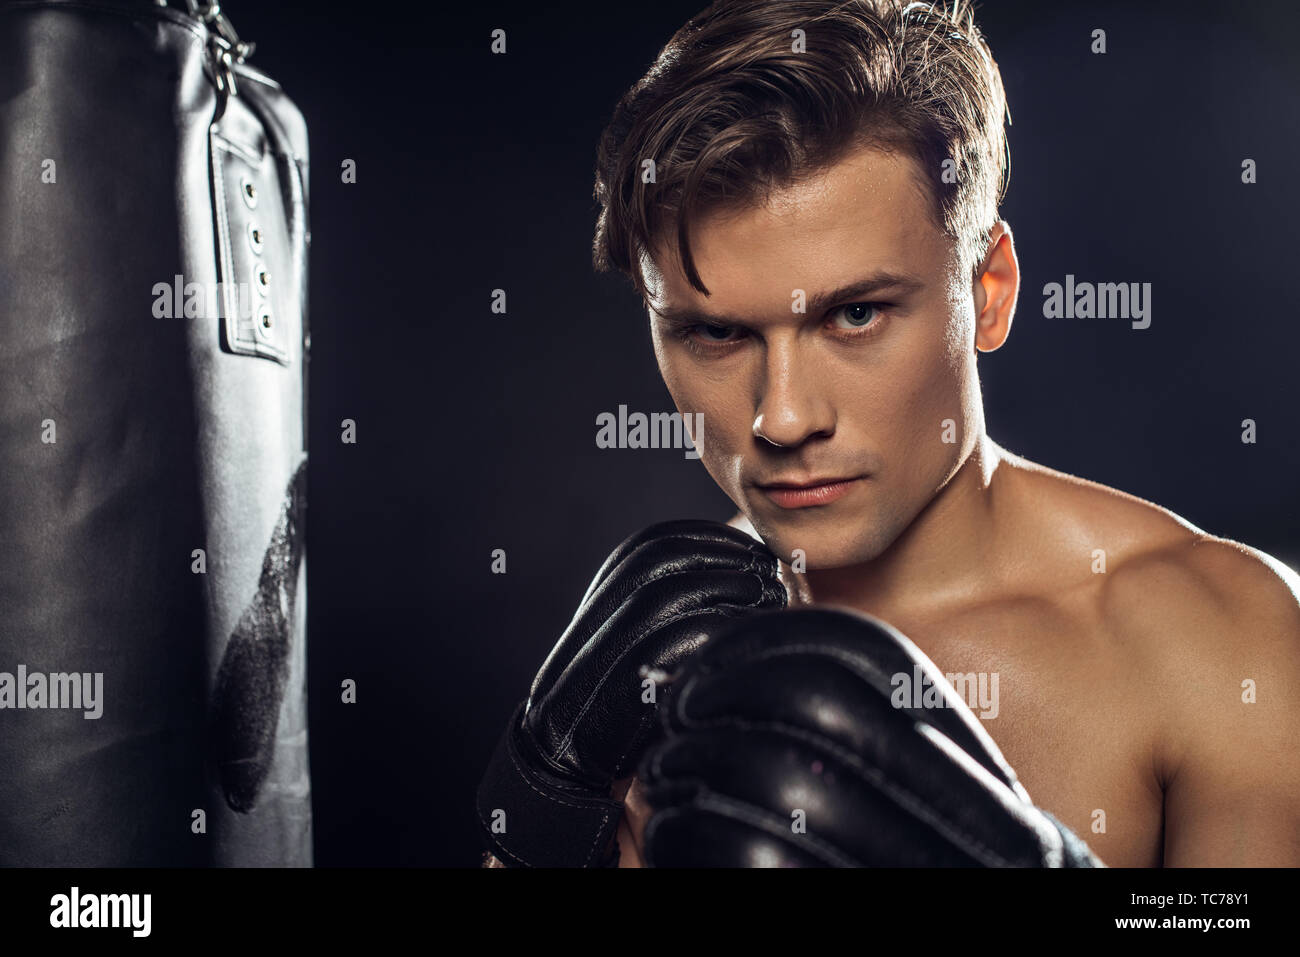 Boxer standing near punching bag and looking at camera - Stock Image